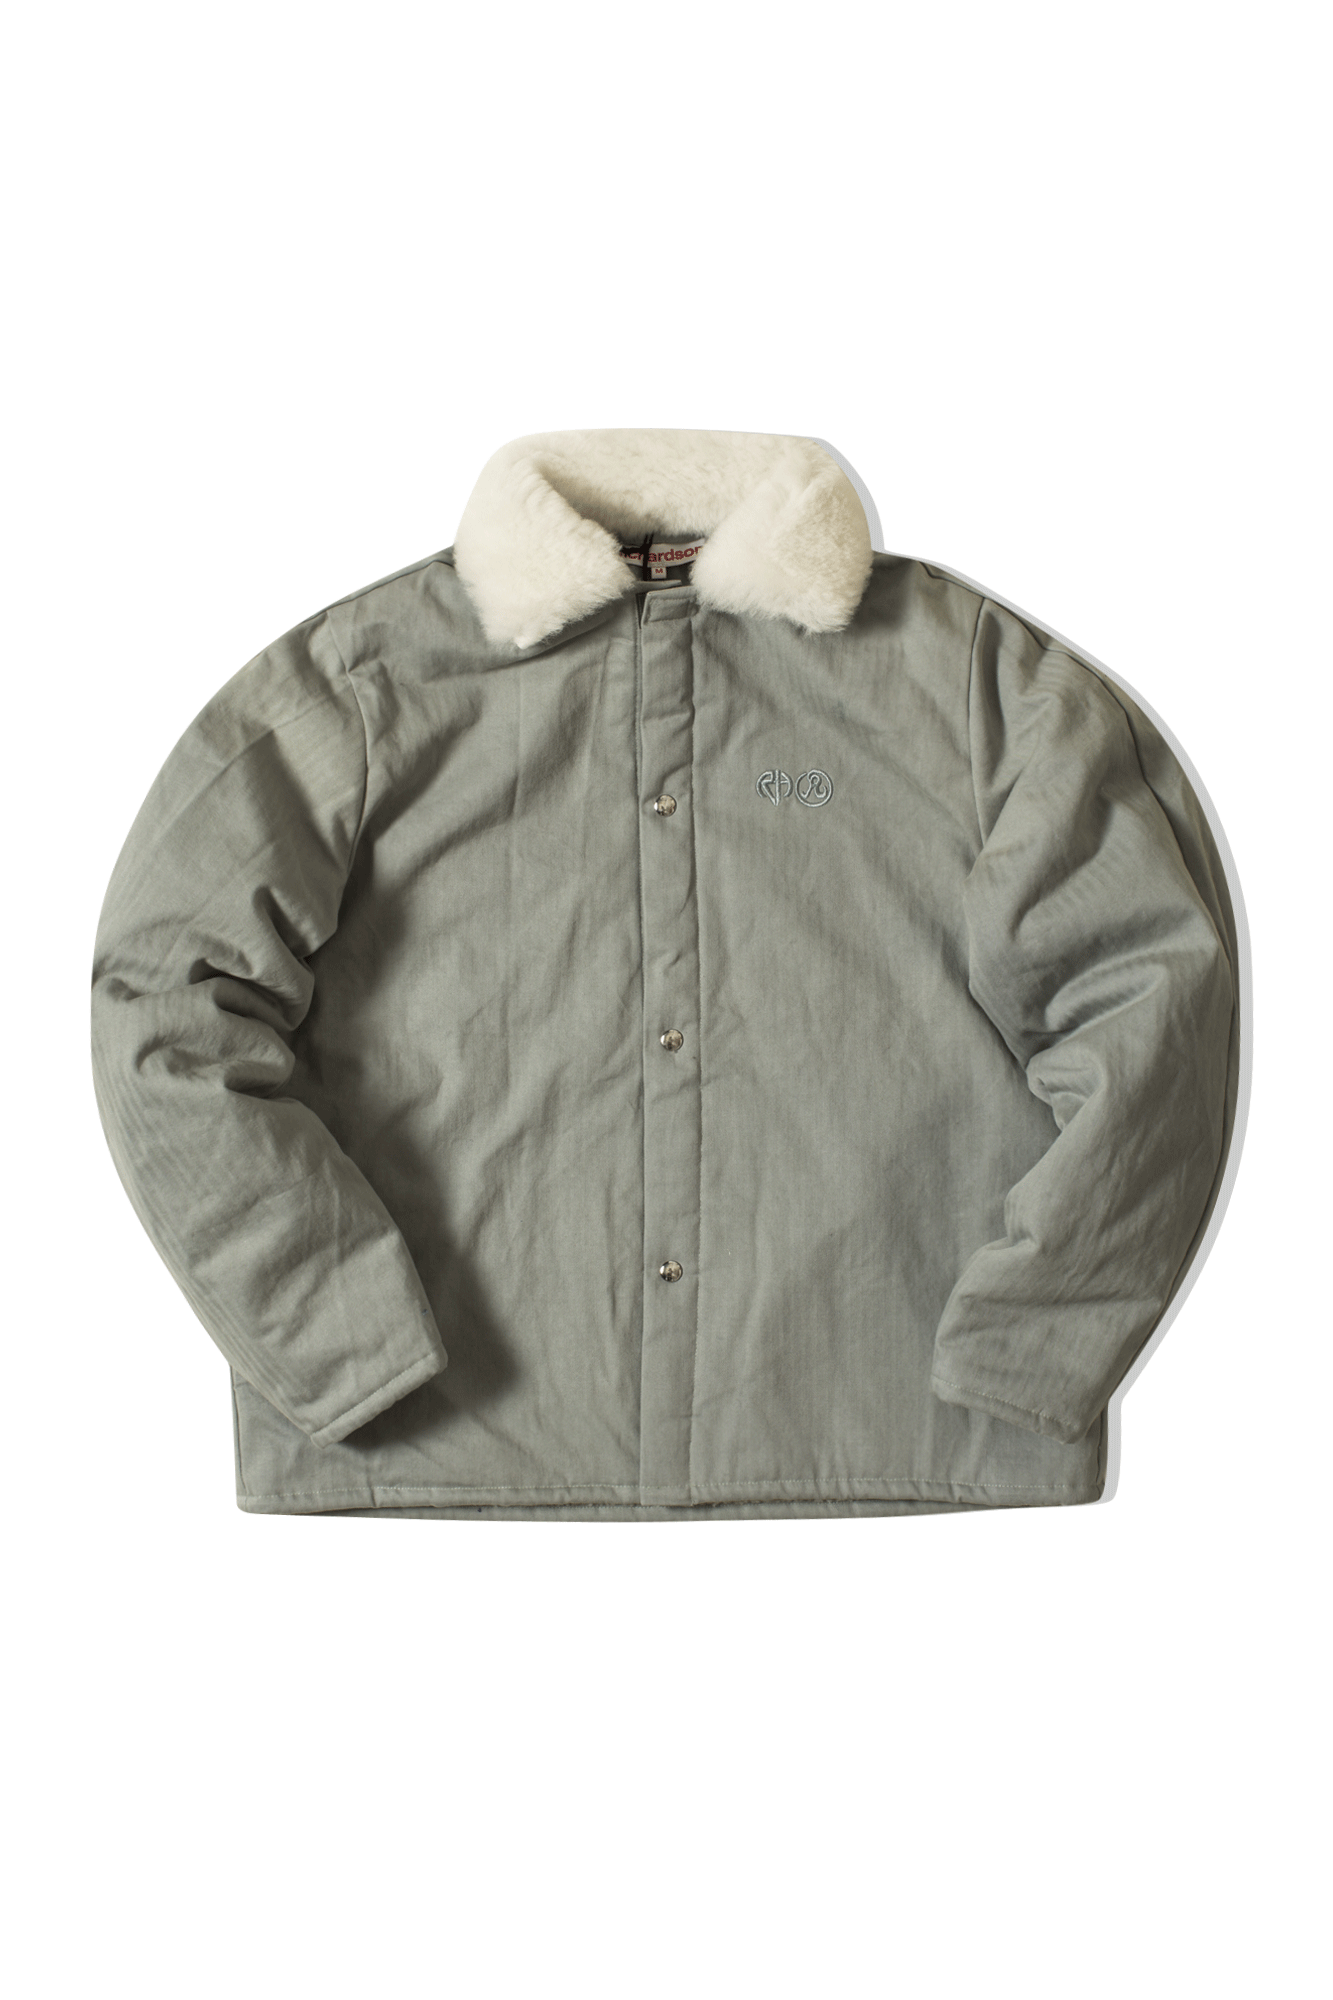 Sherpa Welder's Jacket Blue